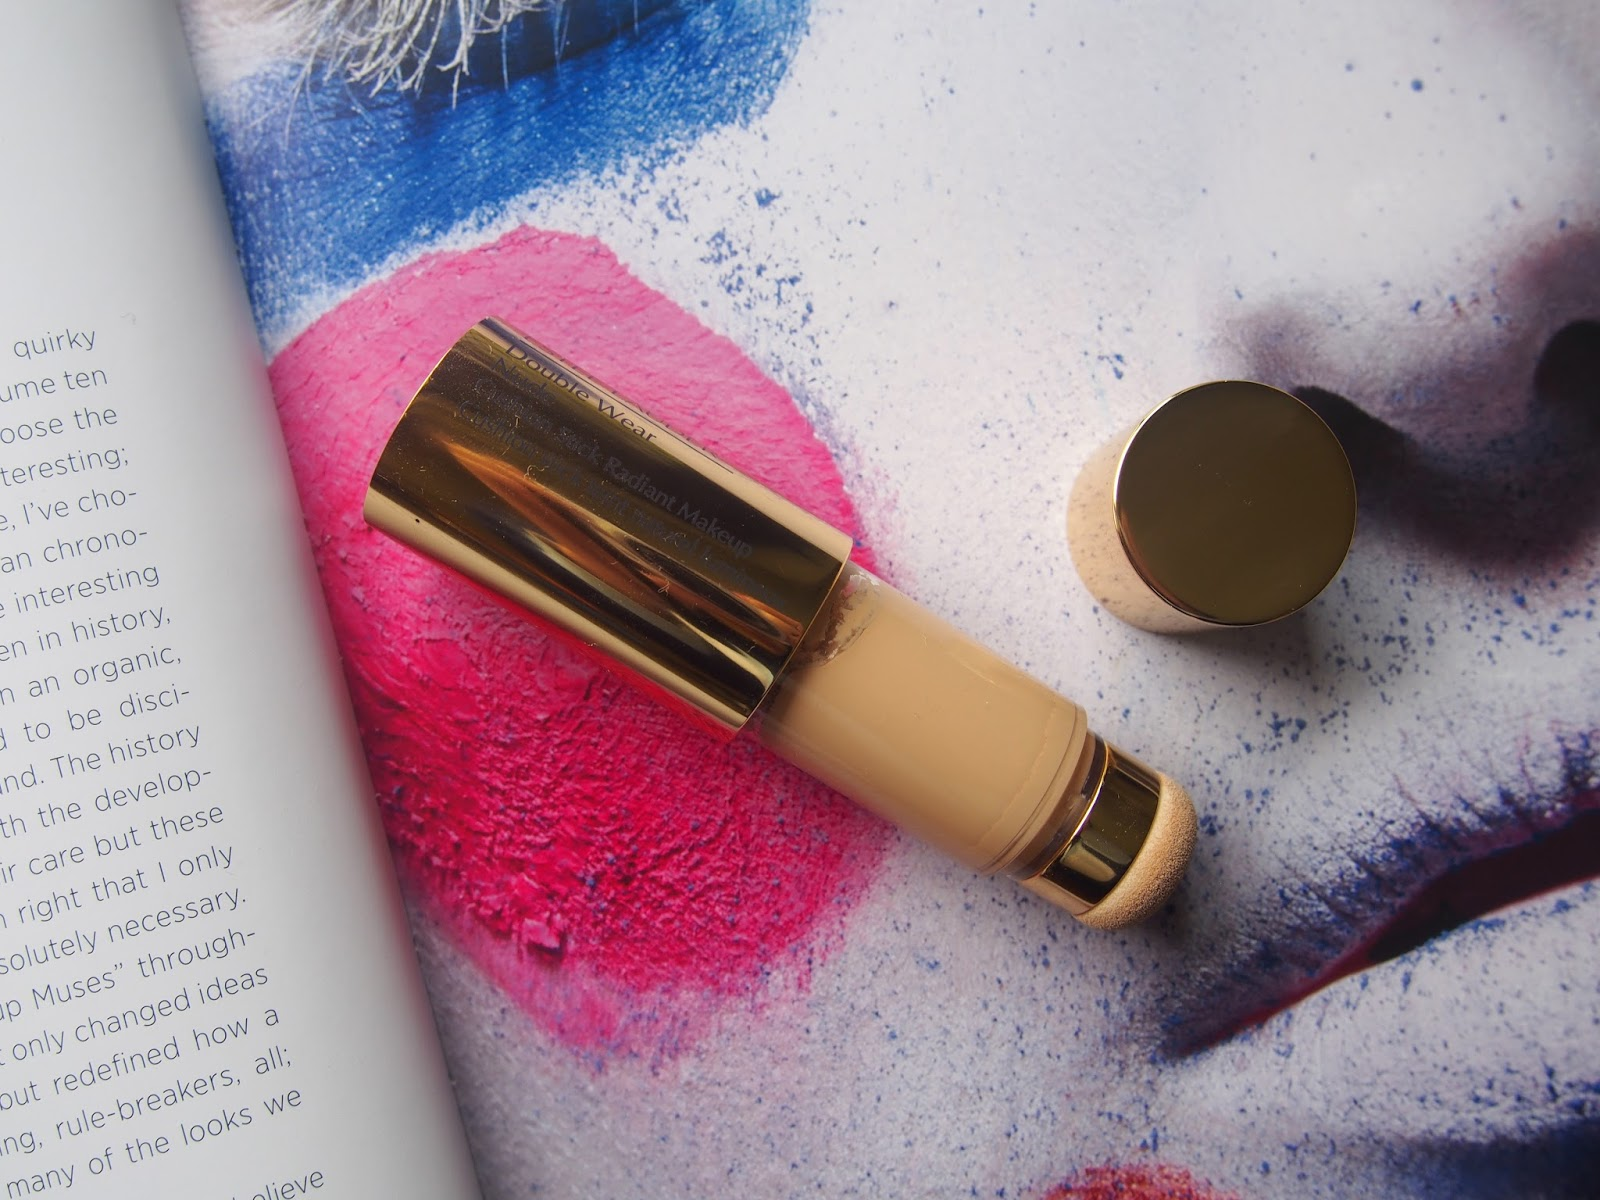 Brand Focus: Estee Lauder Review Swatches and Makeup Demo